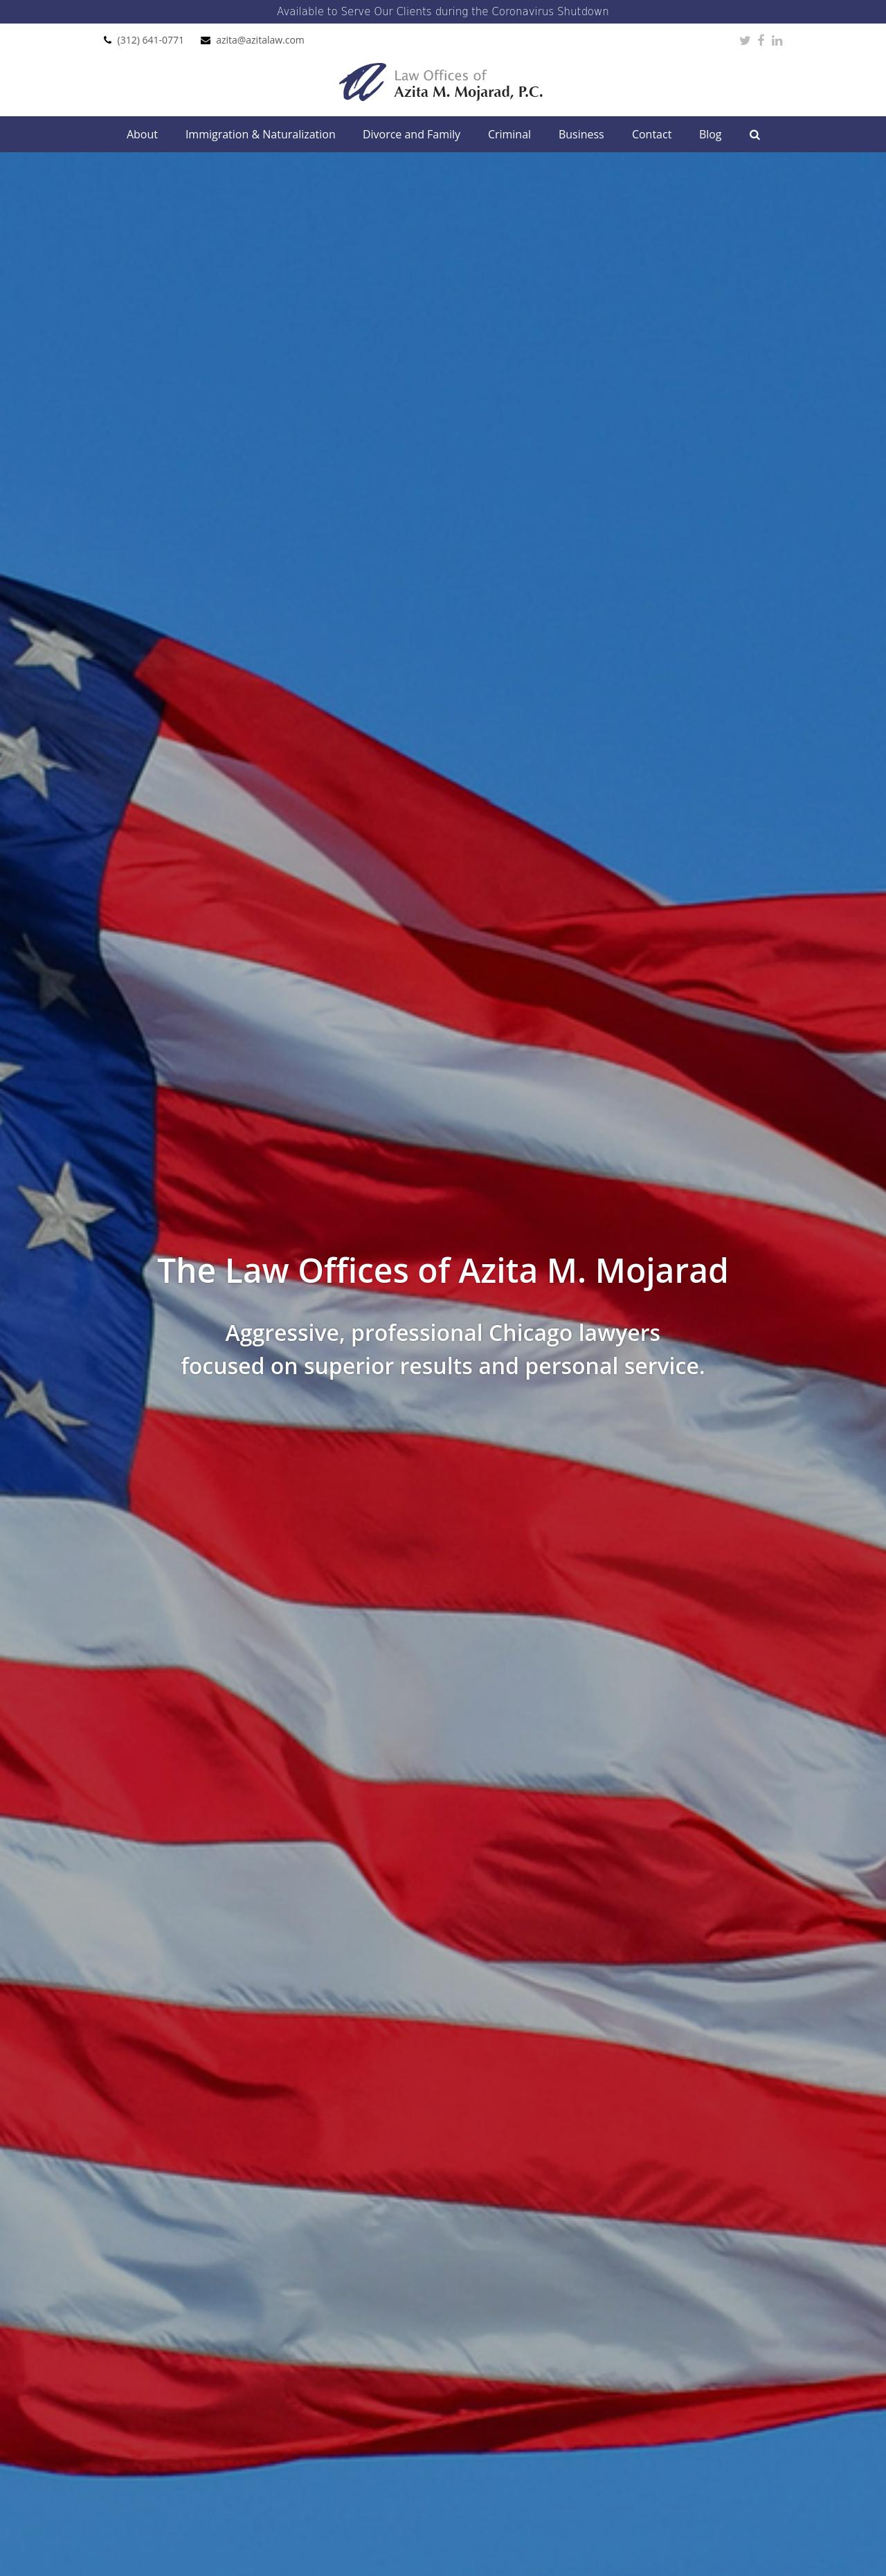 Law Offices of Azita M. Mojarad, P.C. - Chicago IL Lawyers